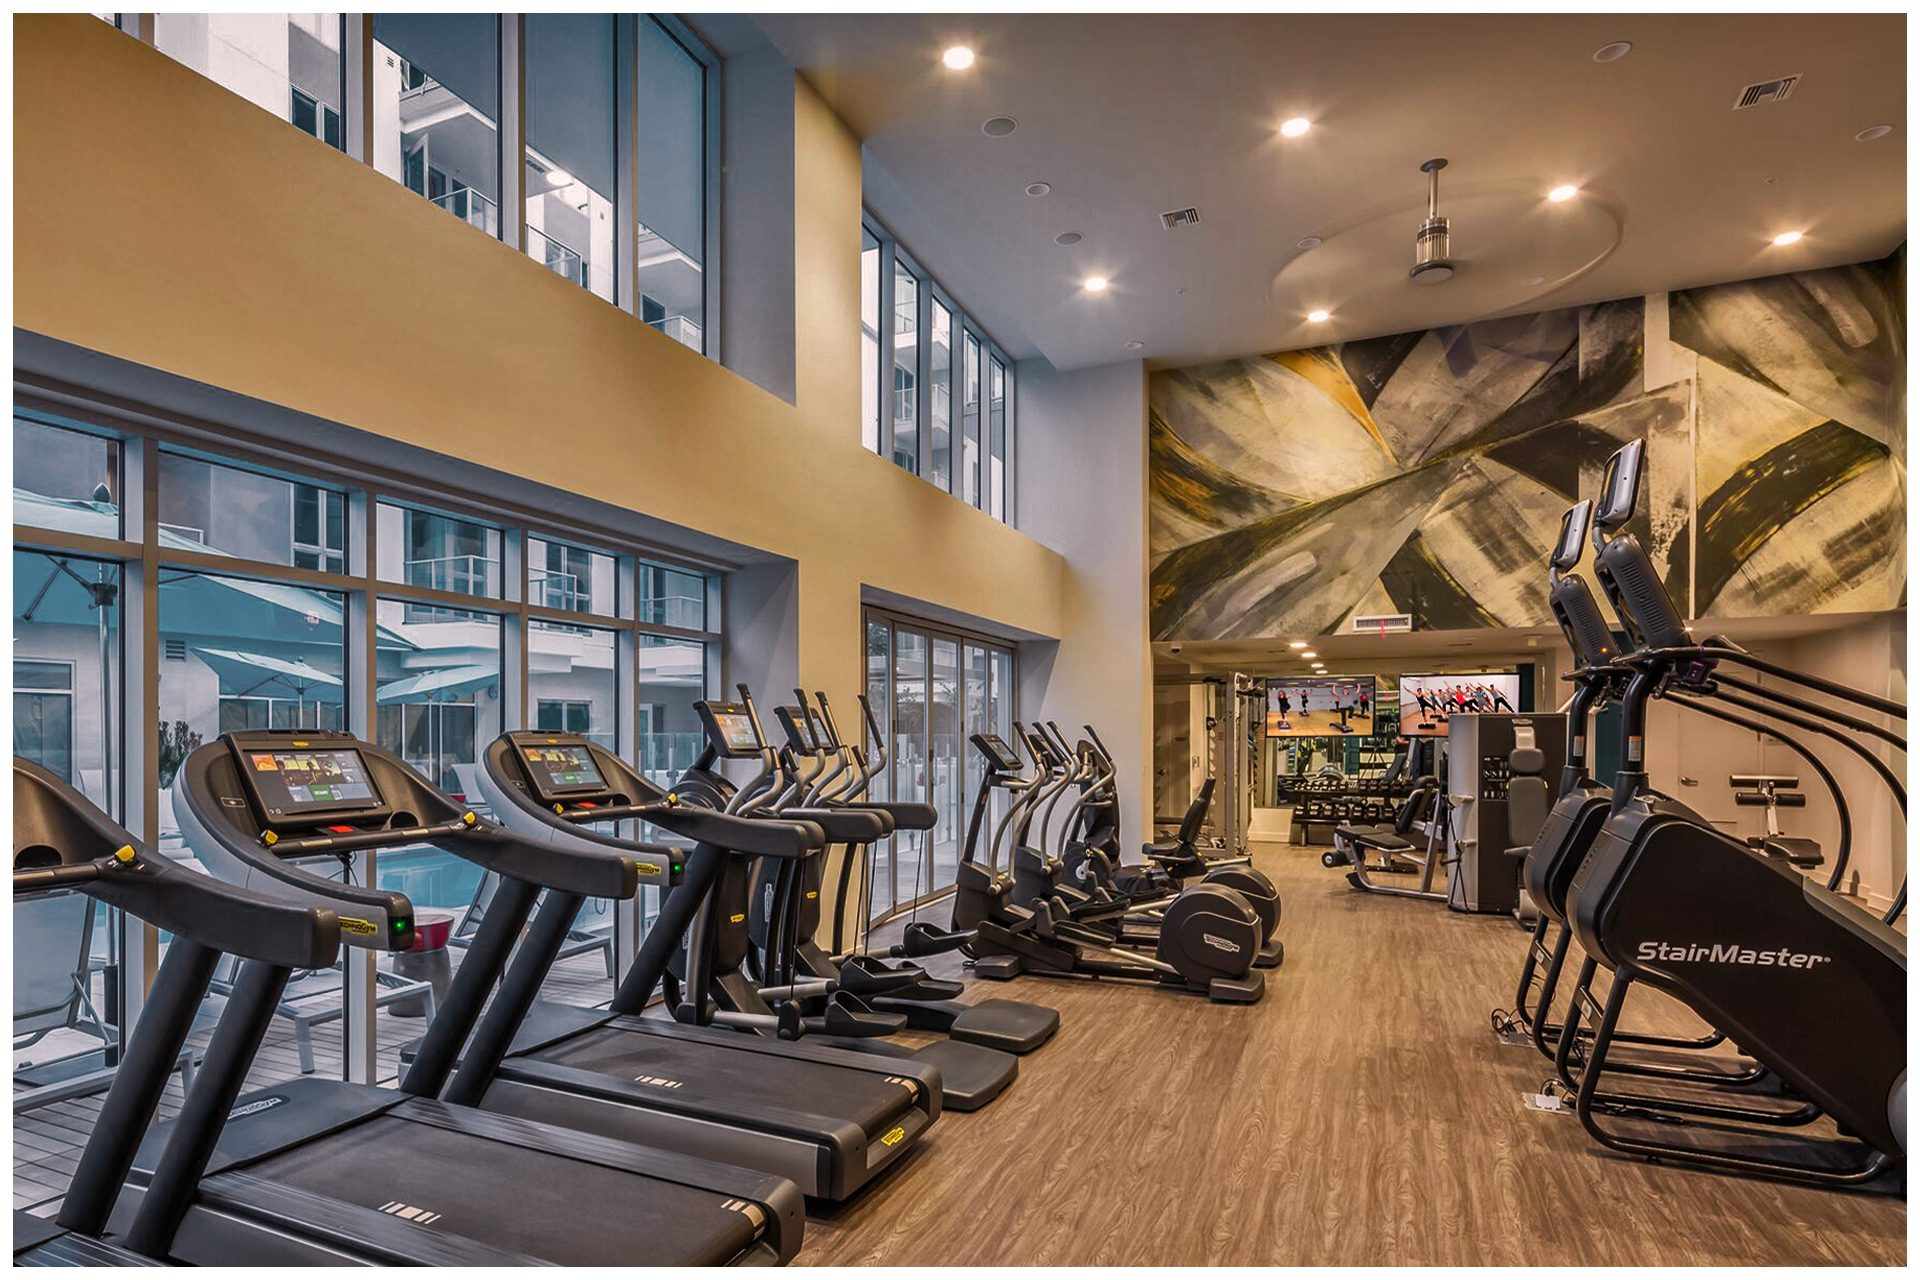 GYM AV PROVISIONSGym Audio Video & Enterprise Grade WiFi. Audio Video provisions are controlled via an in-room wall-mounted iPad and remotely from leasing office iPad.